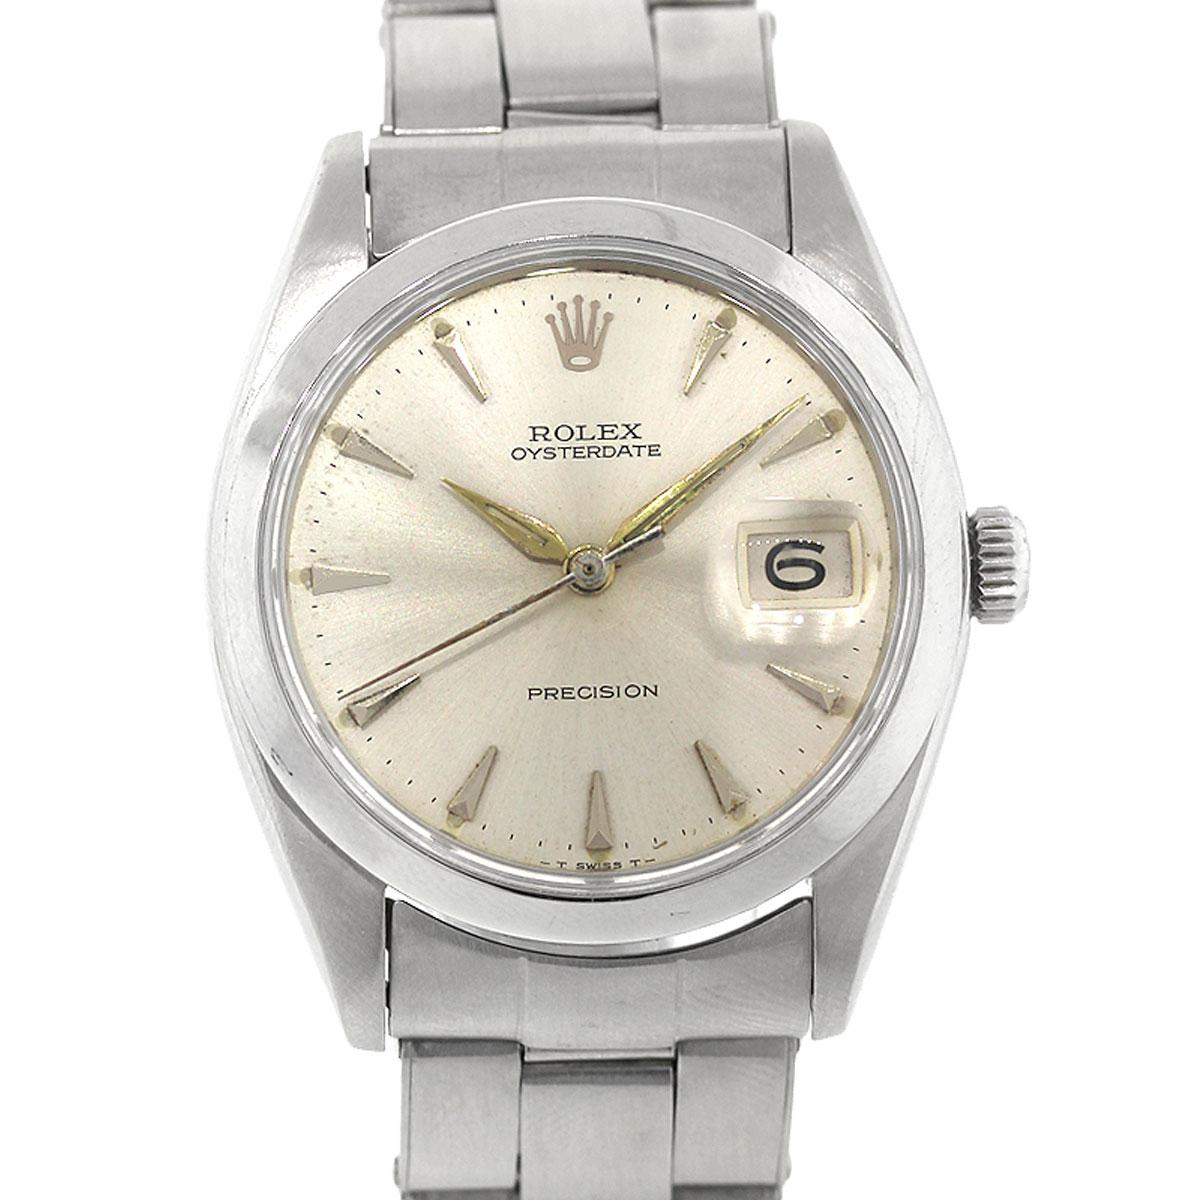 Rolex Stainless Steel Oysterdate Precision Automatic Wristwatch Ref 6694